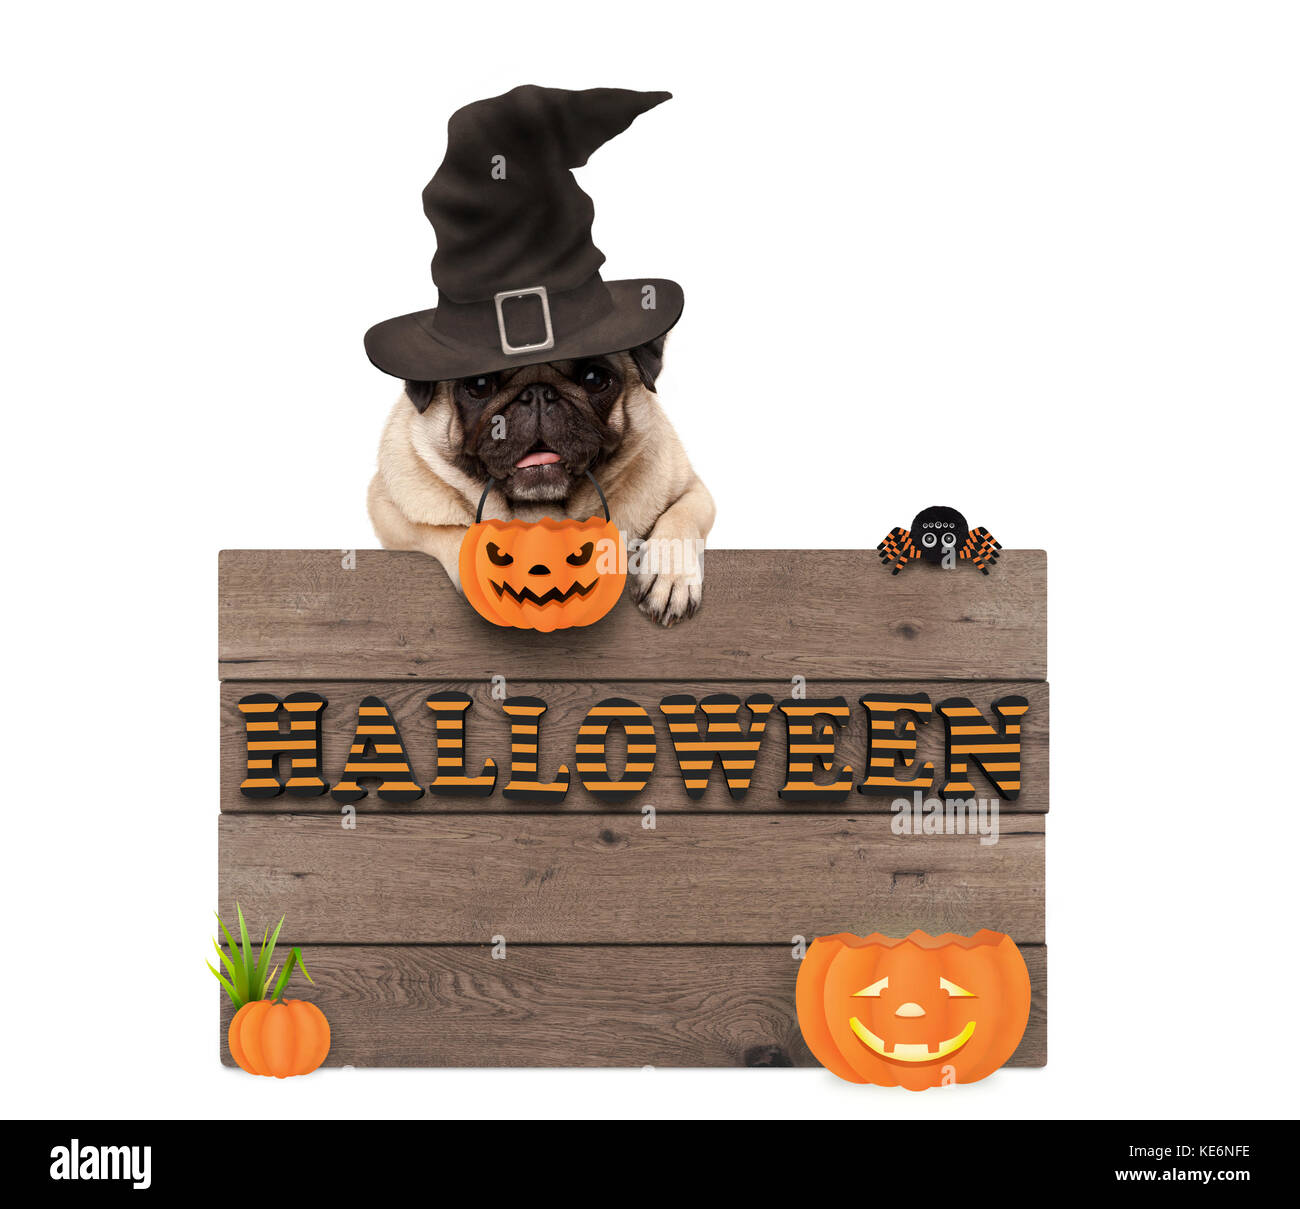 cute halloween pug puppy dog with witch hat and pumpkins and wooden board sign with letters halloween, isolated - Stock Image